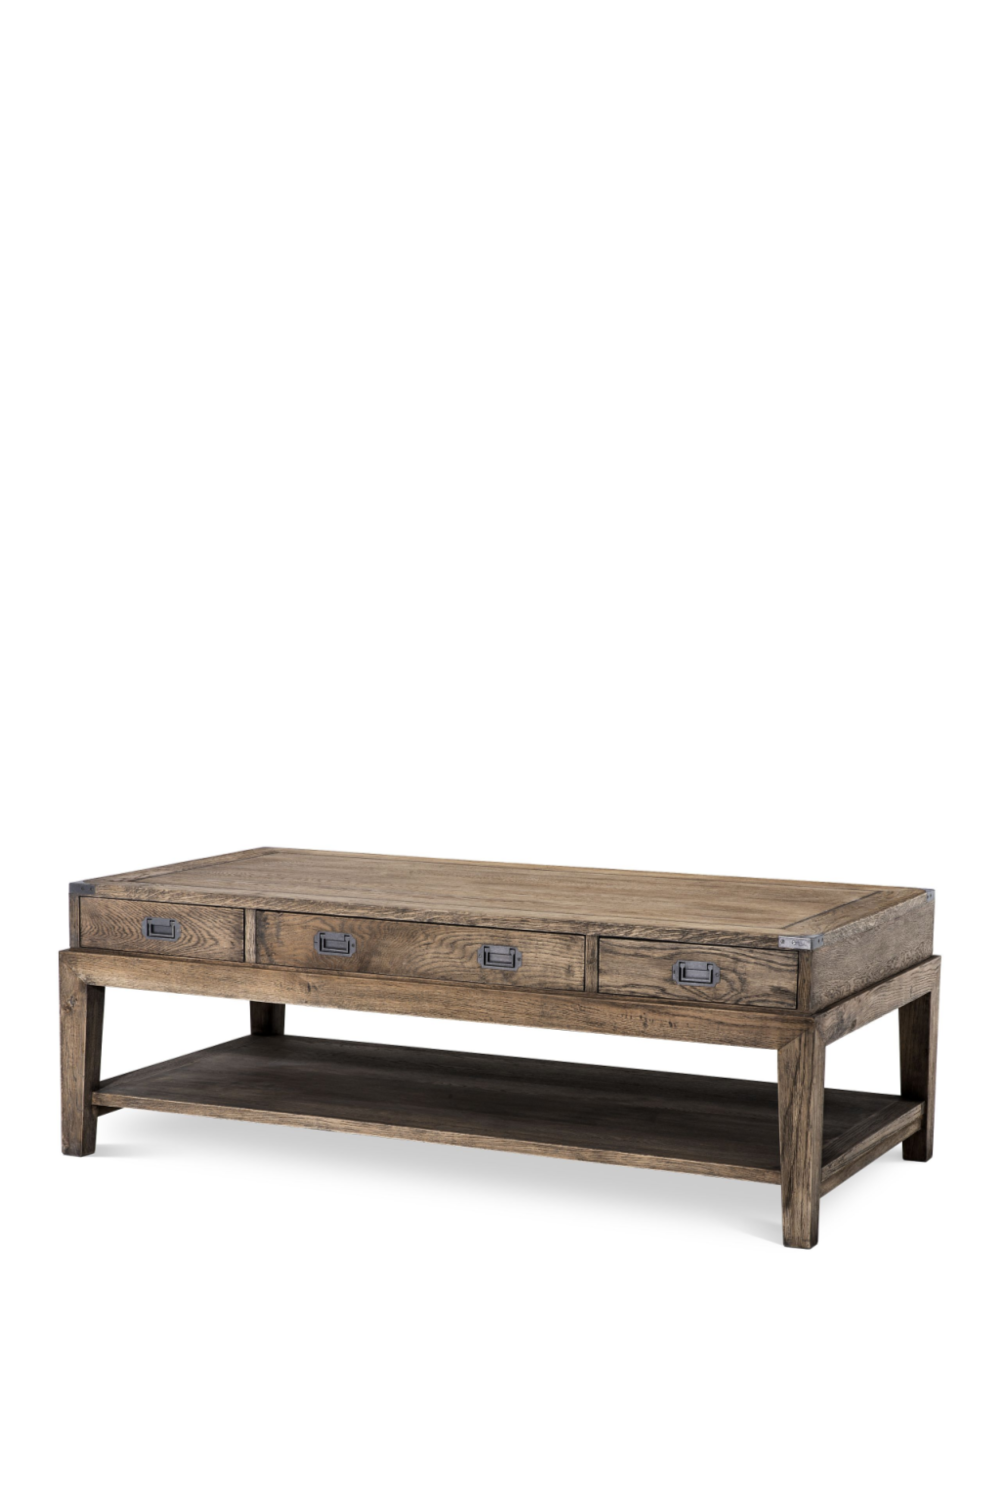 Classic 3 drawer Coffee Table | Eichholtz Military | Woodfurniture.com